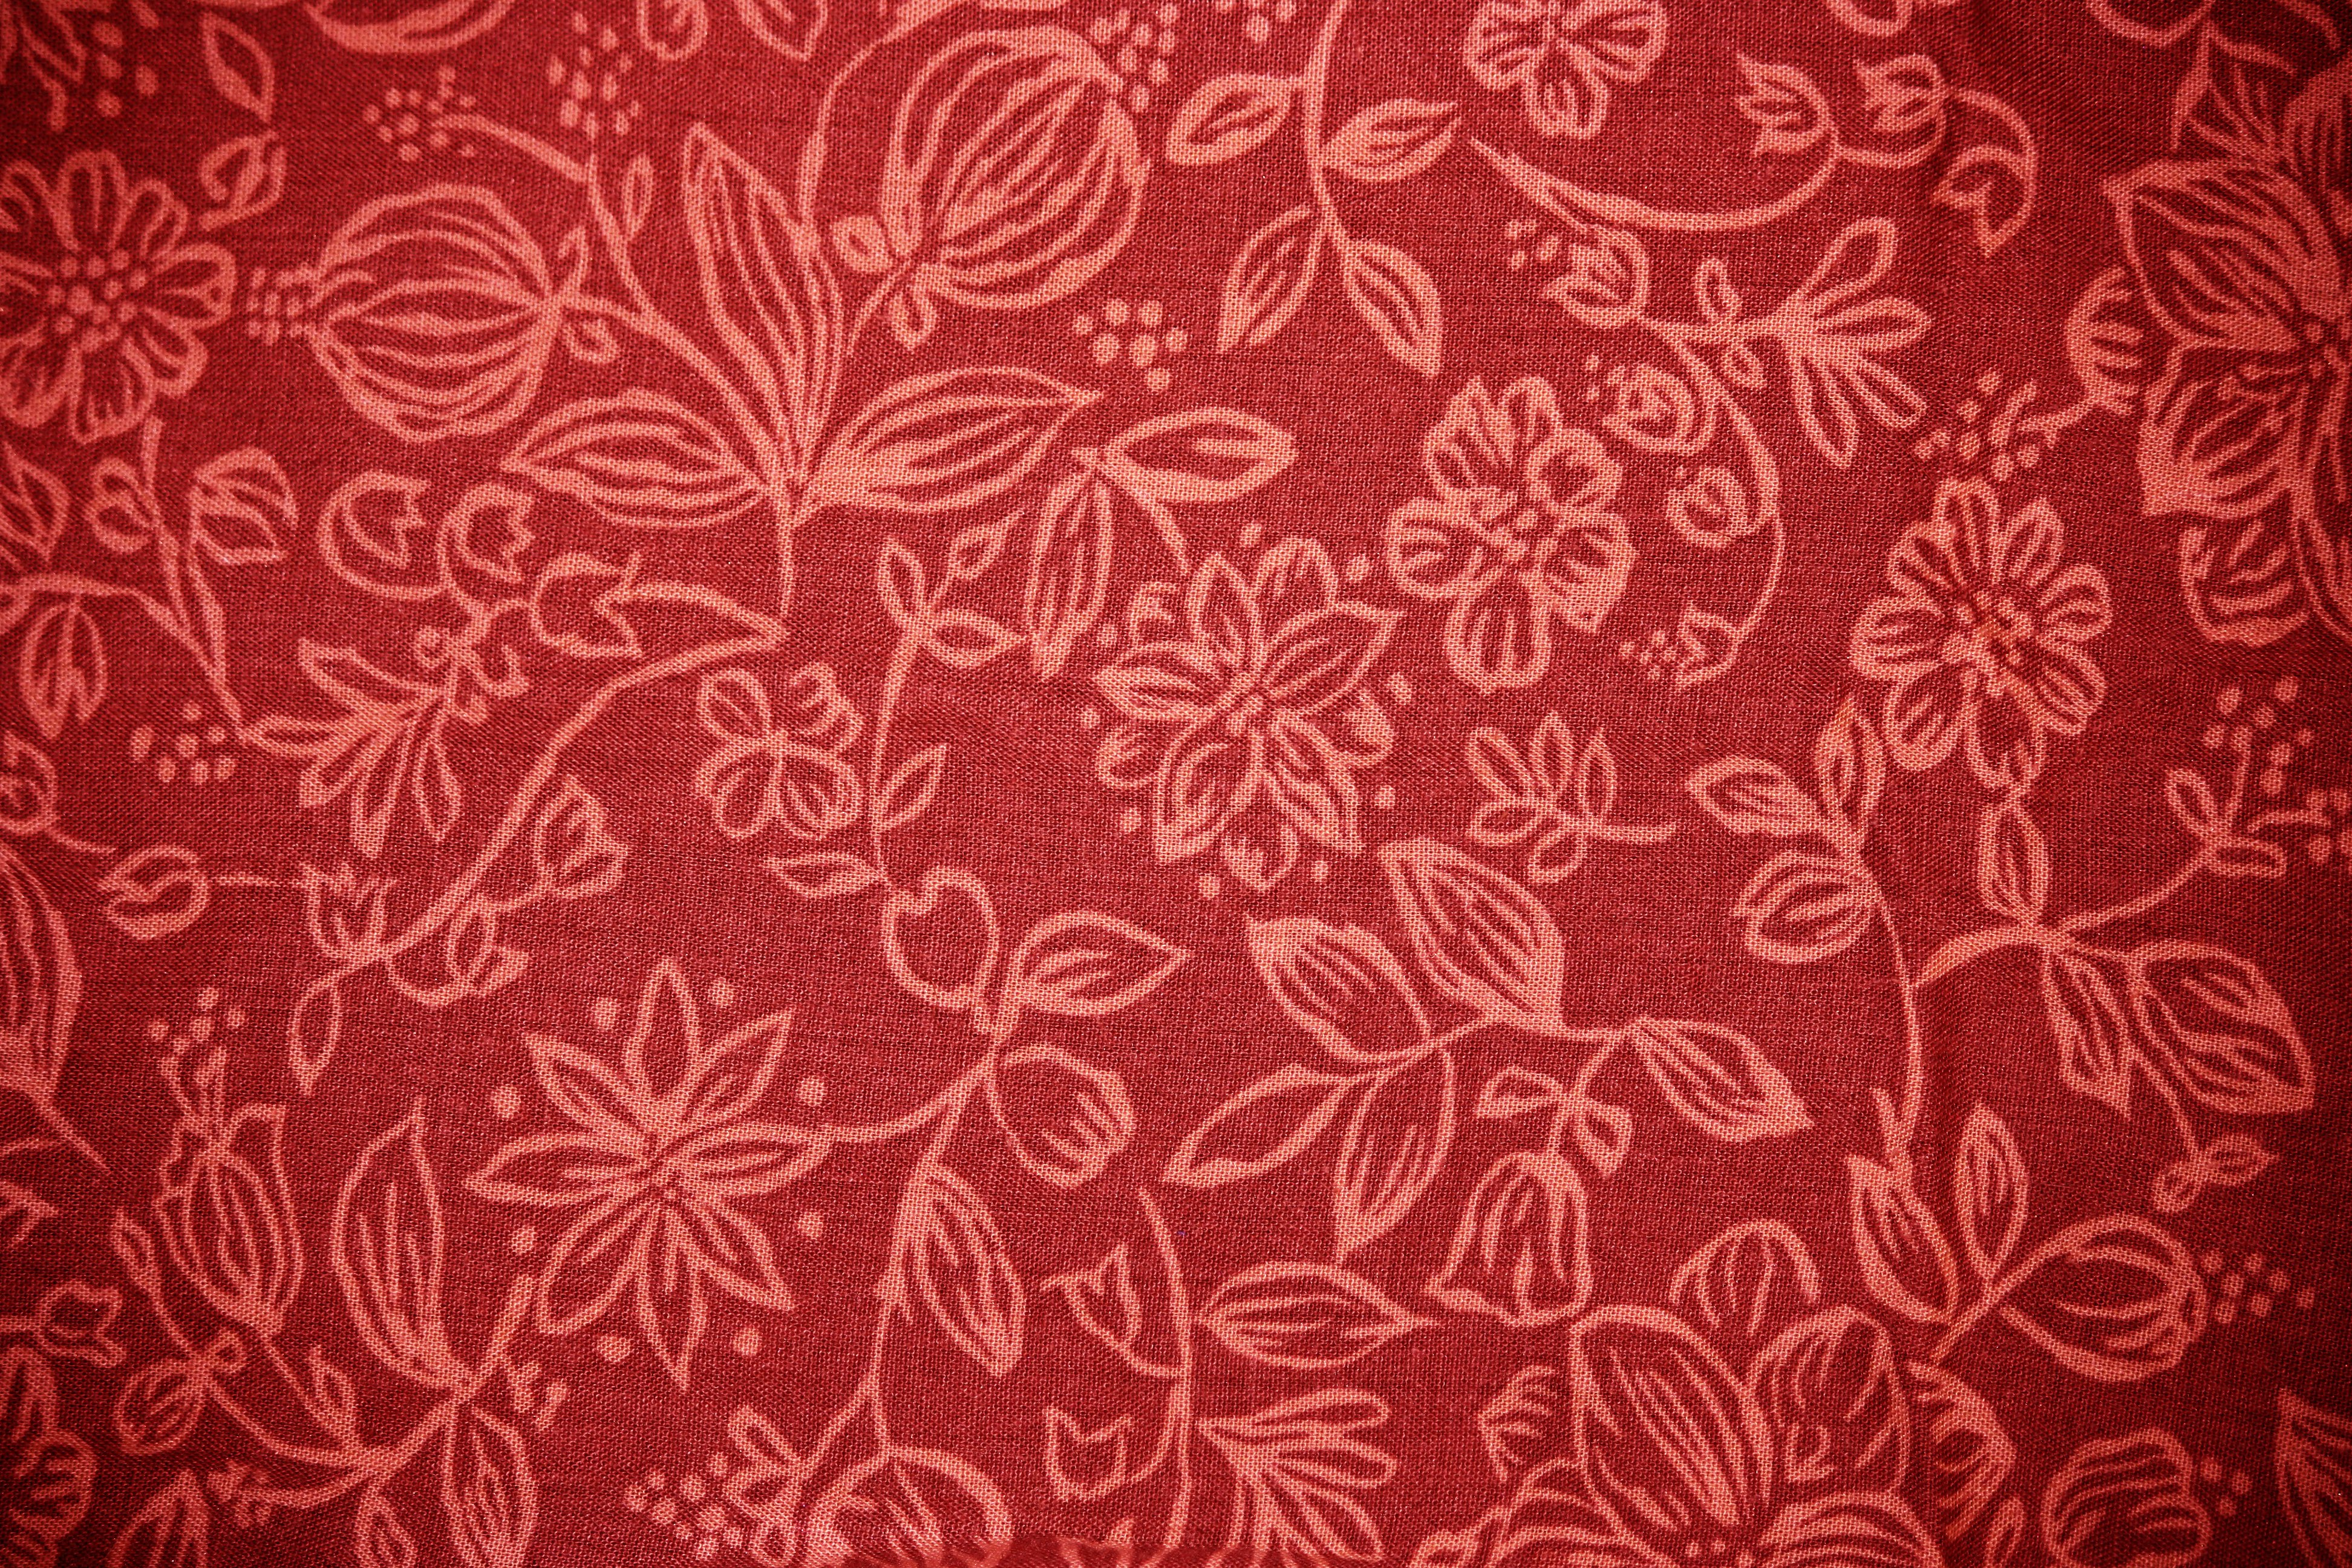 Red Fabric with Floral Pattern Texture Picture | Free Photograph ...